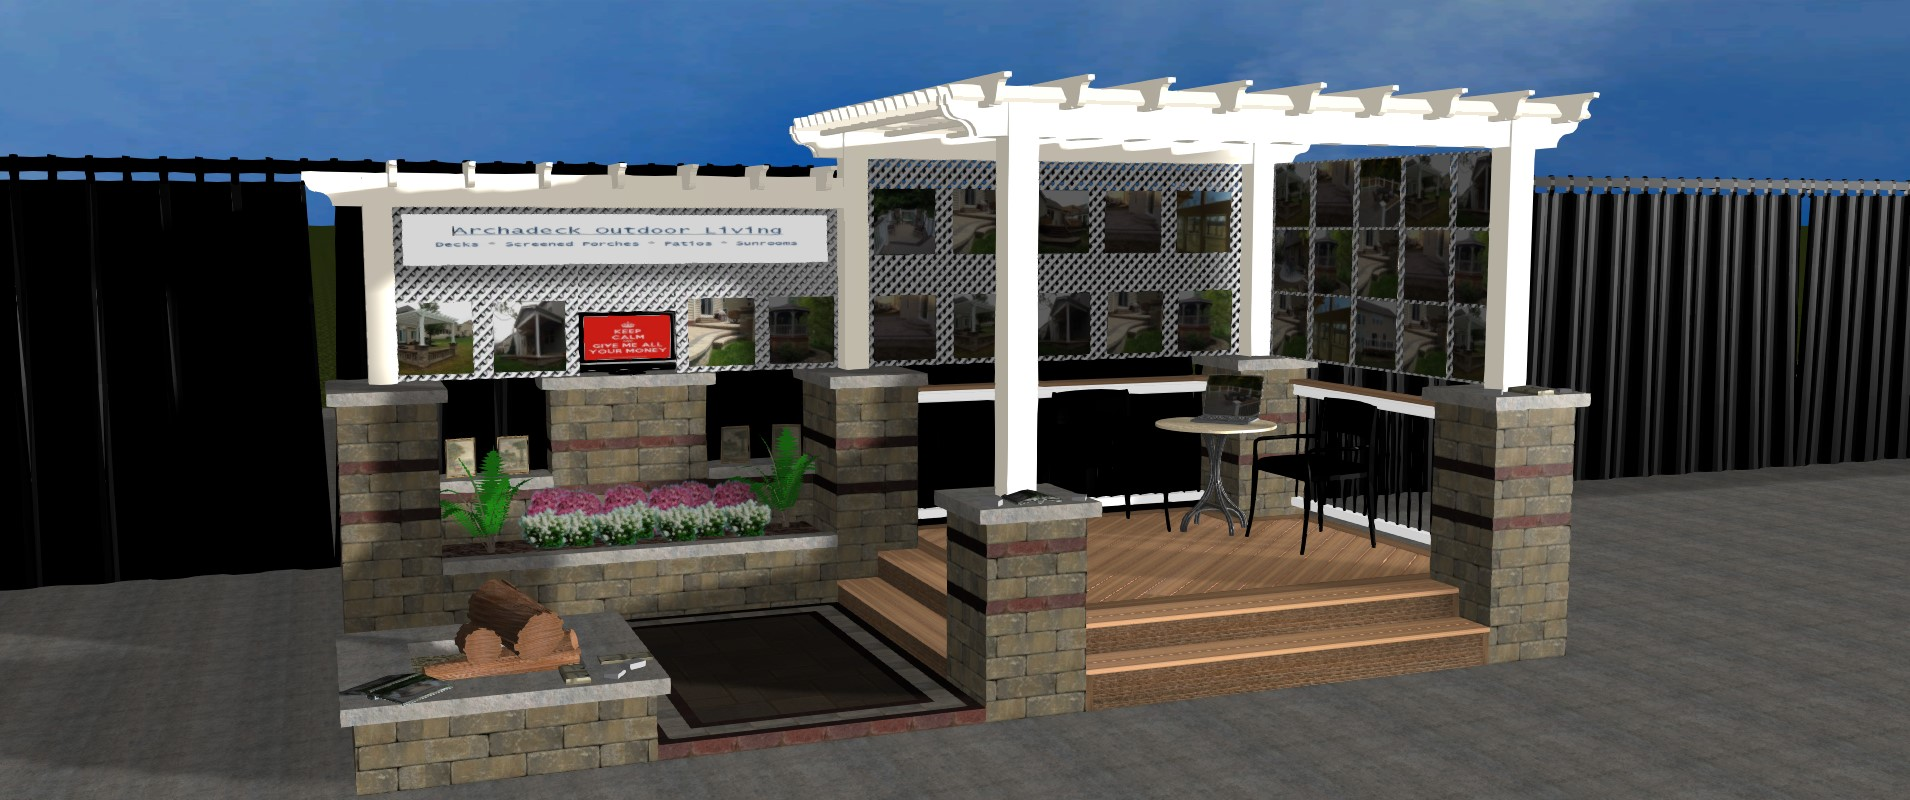 ... Columbus Dispatch Home And Garden Show Our Booth Will Highlight A  Stunning Deck And Pergola Combination,a Unilock Patio And Much More!